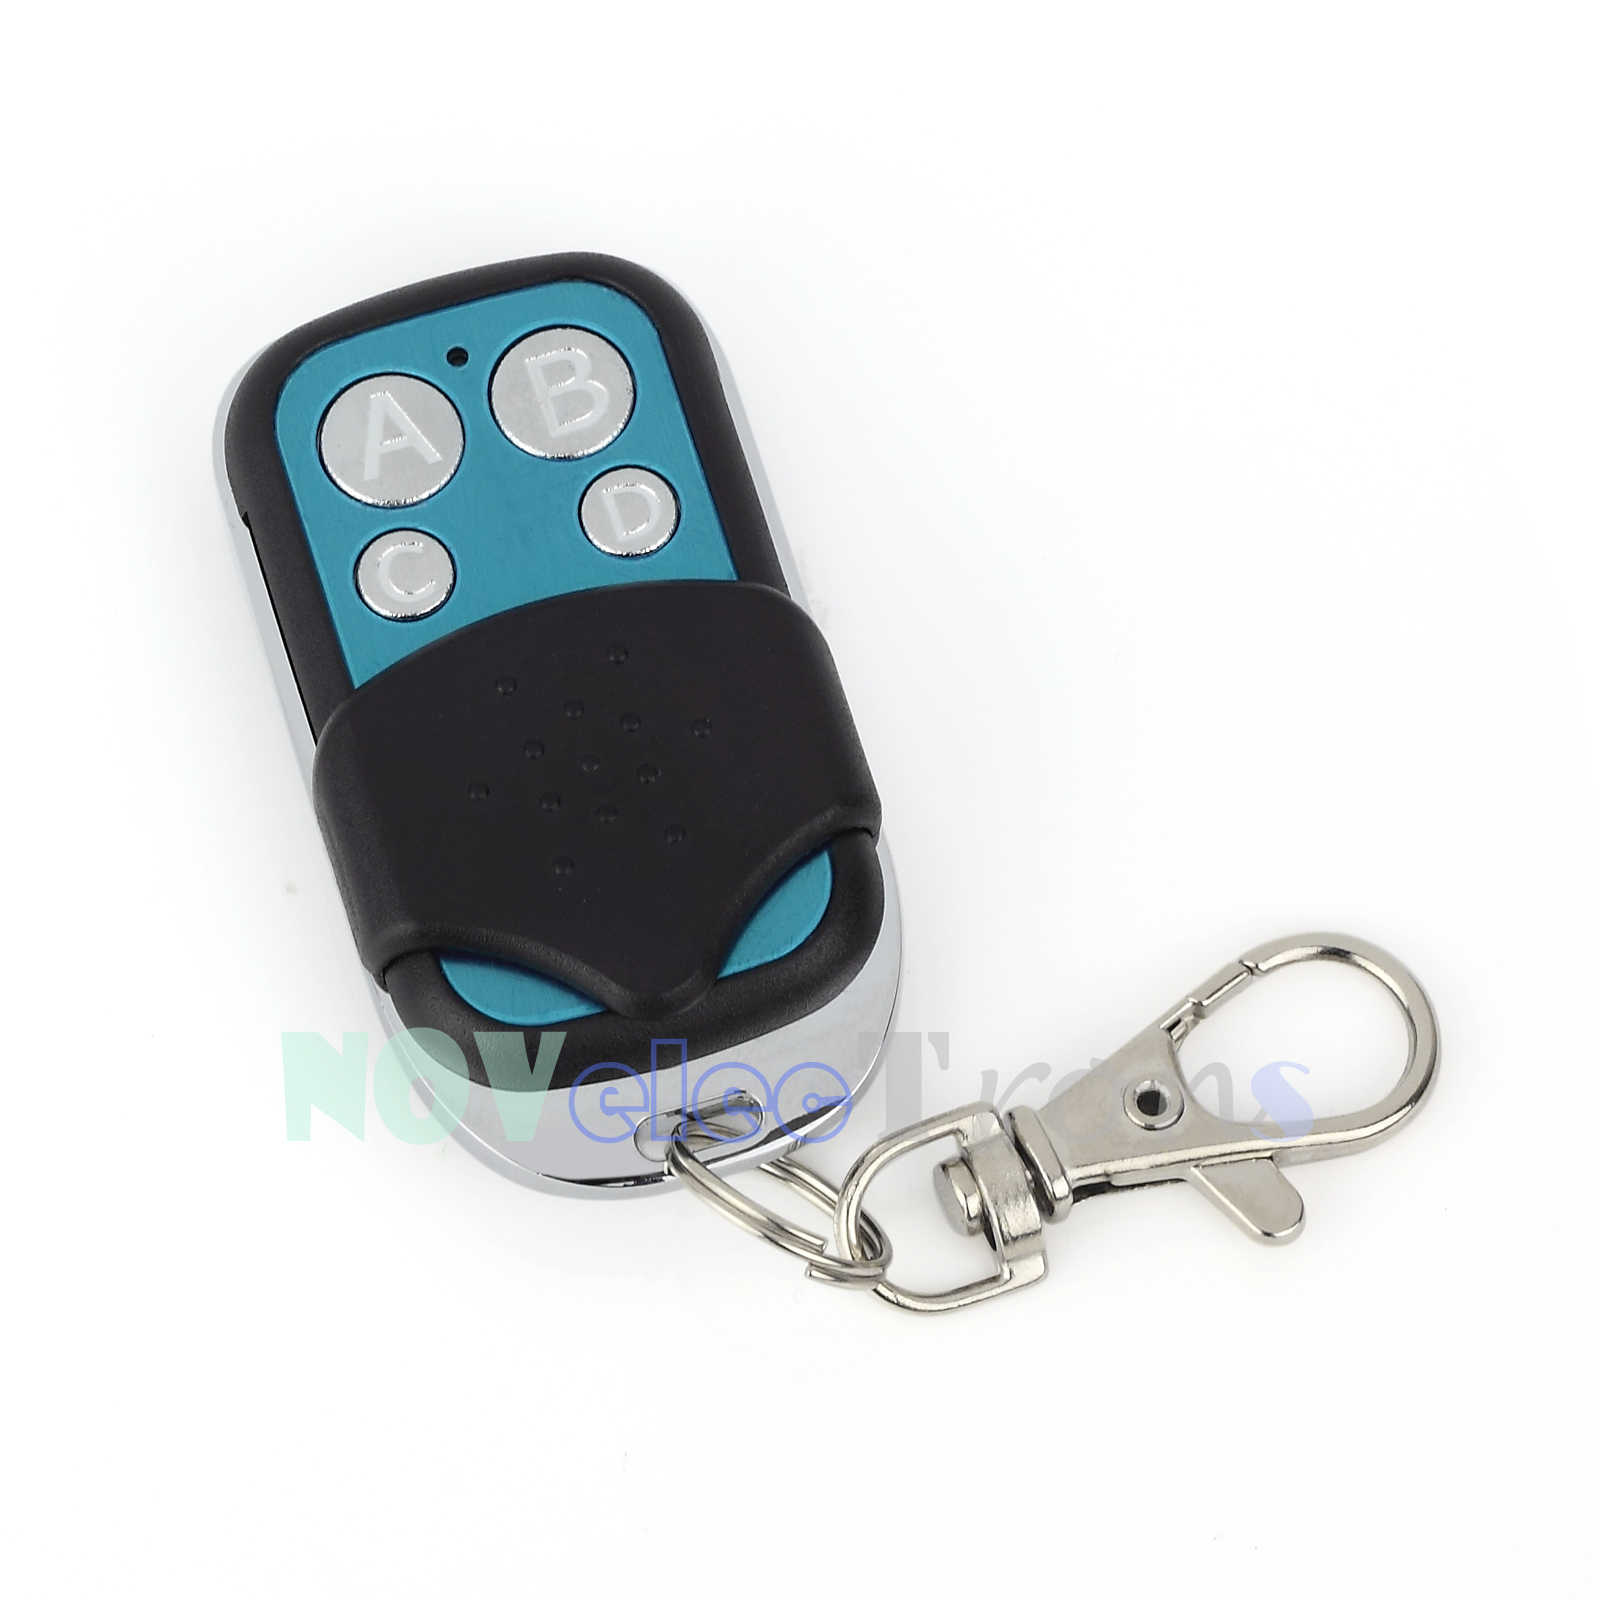 2xuniversal Electric Gate Remote Control Fob Cloning Key